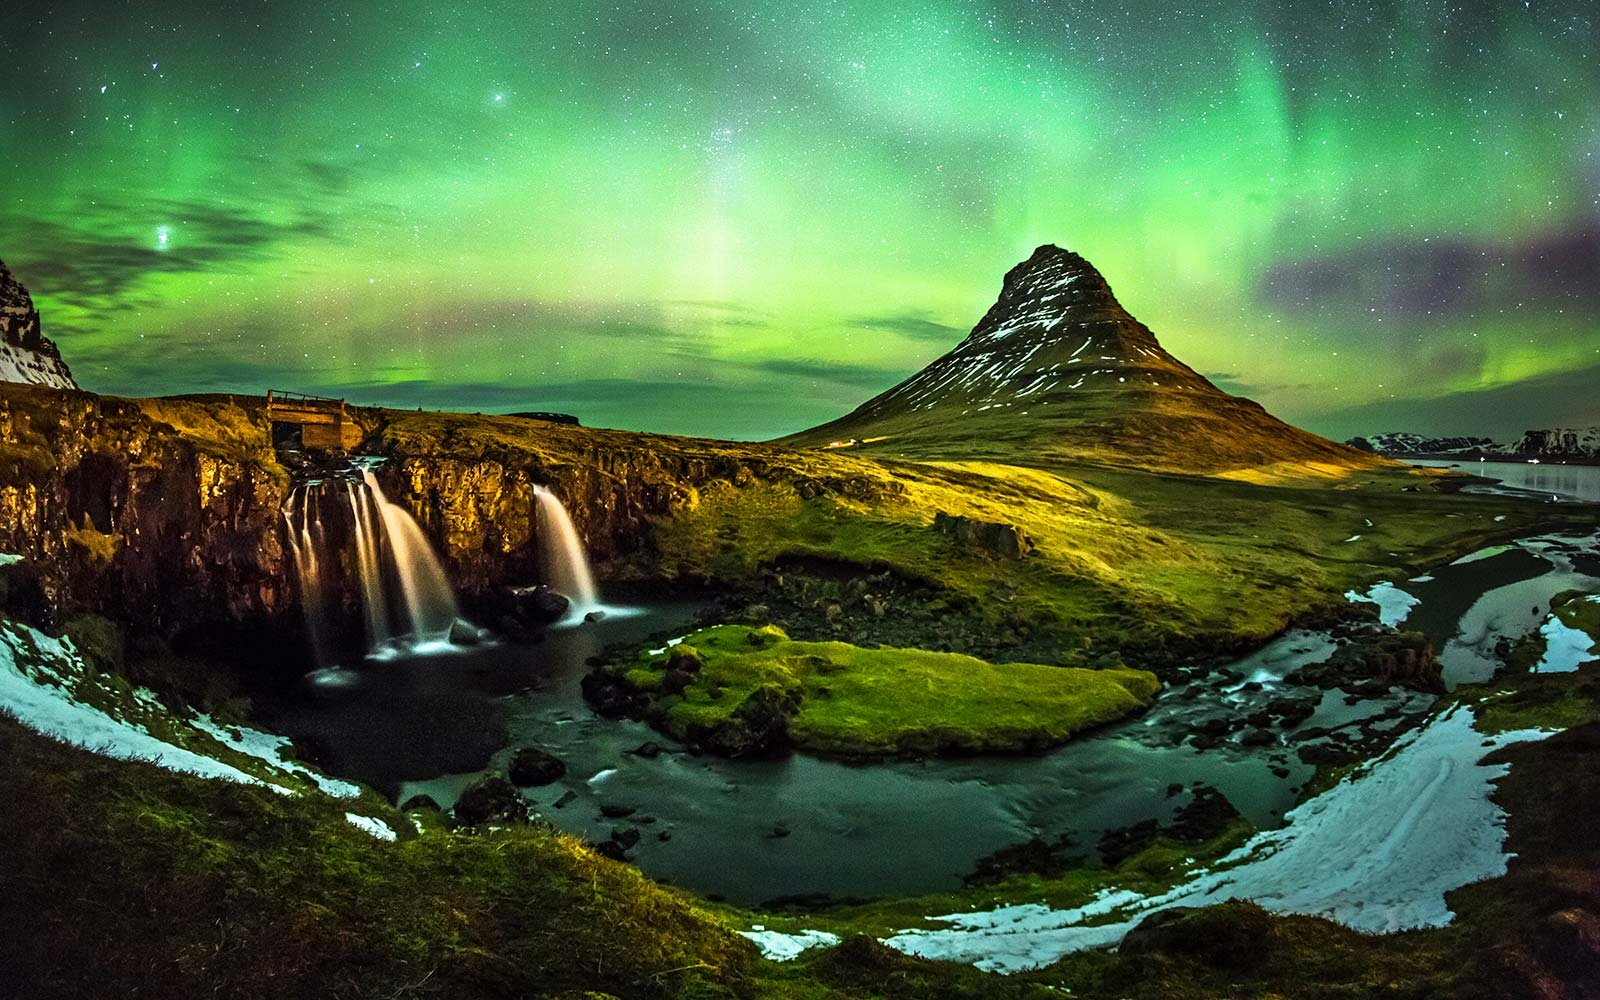 Flights From Miami To Iceland For 99 And To Europe For